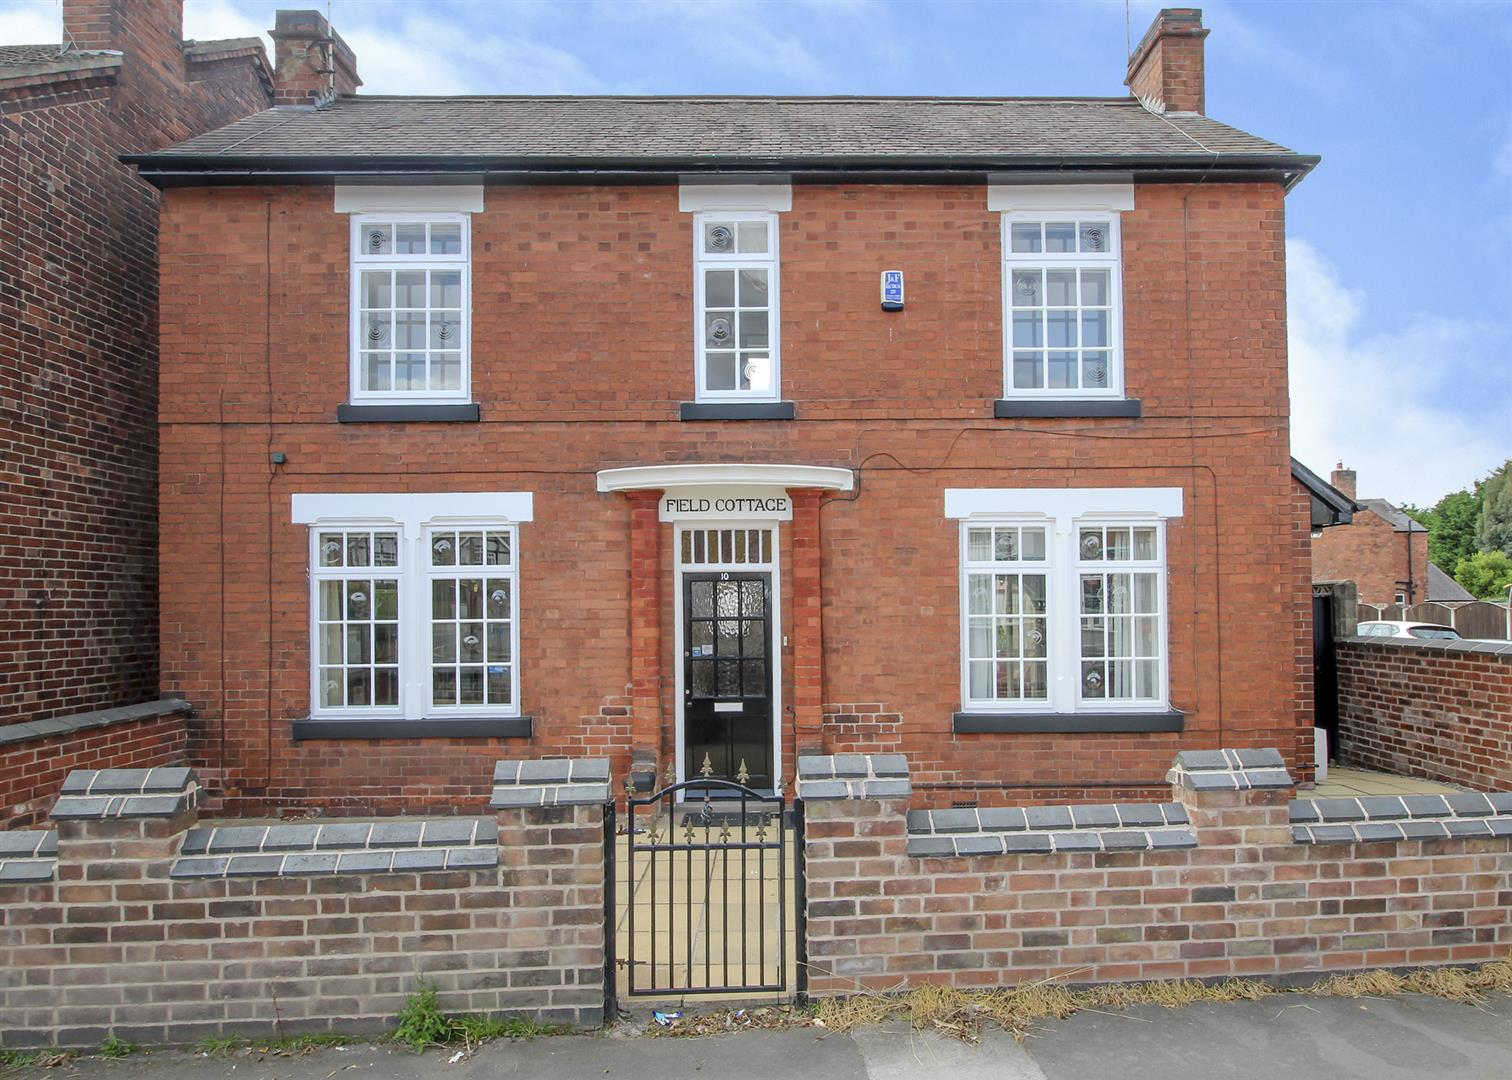 3 Bedrooms Detached House for sale in Pasture Road, Stapleford